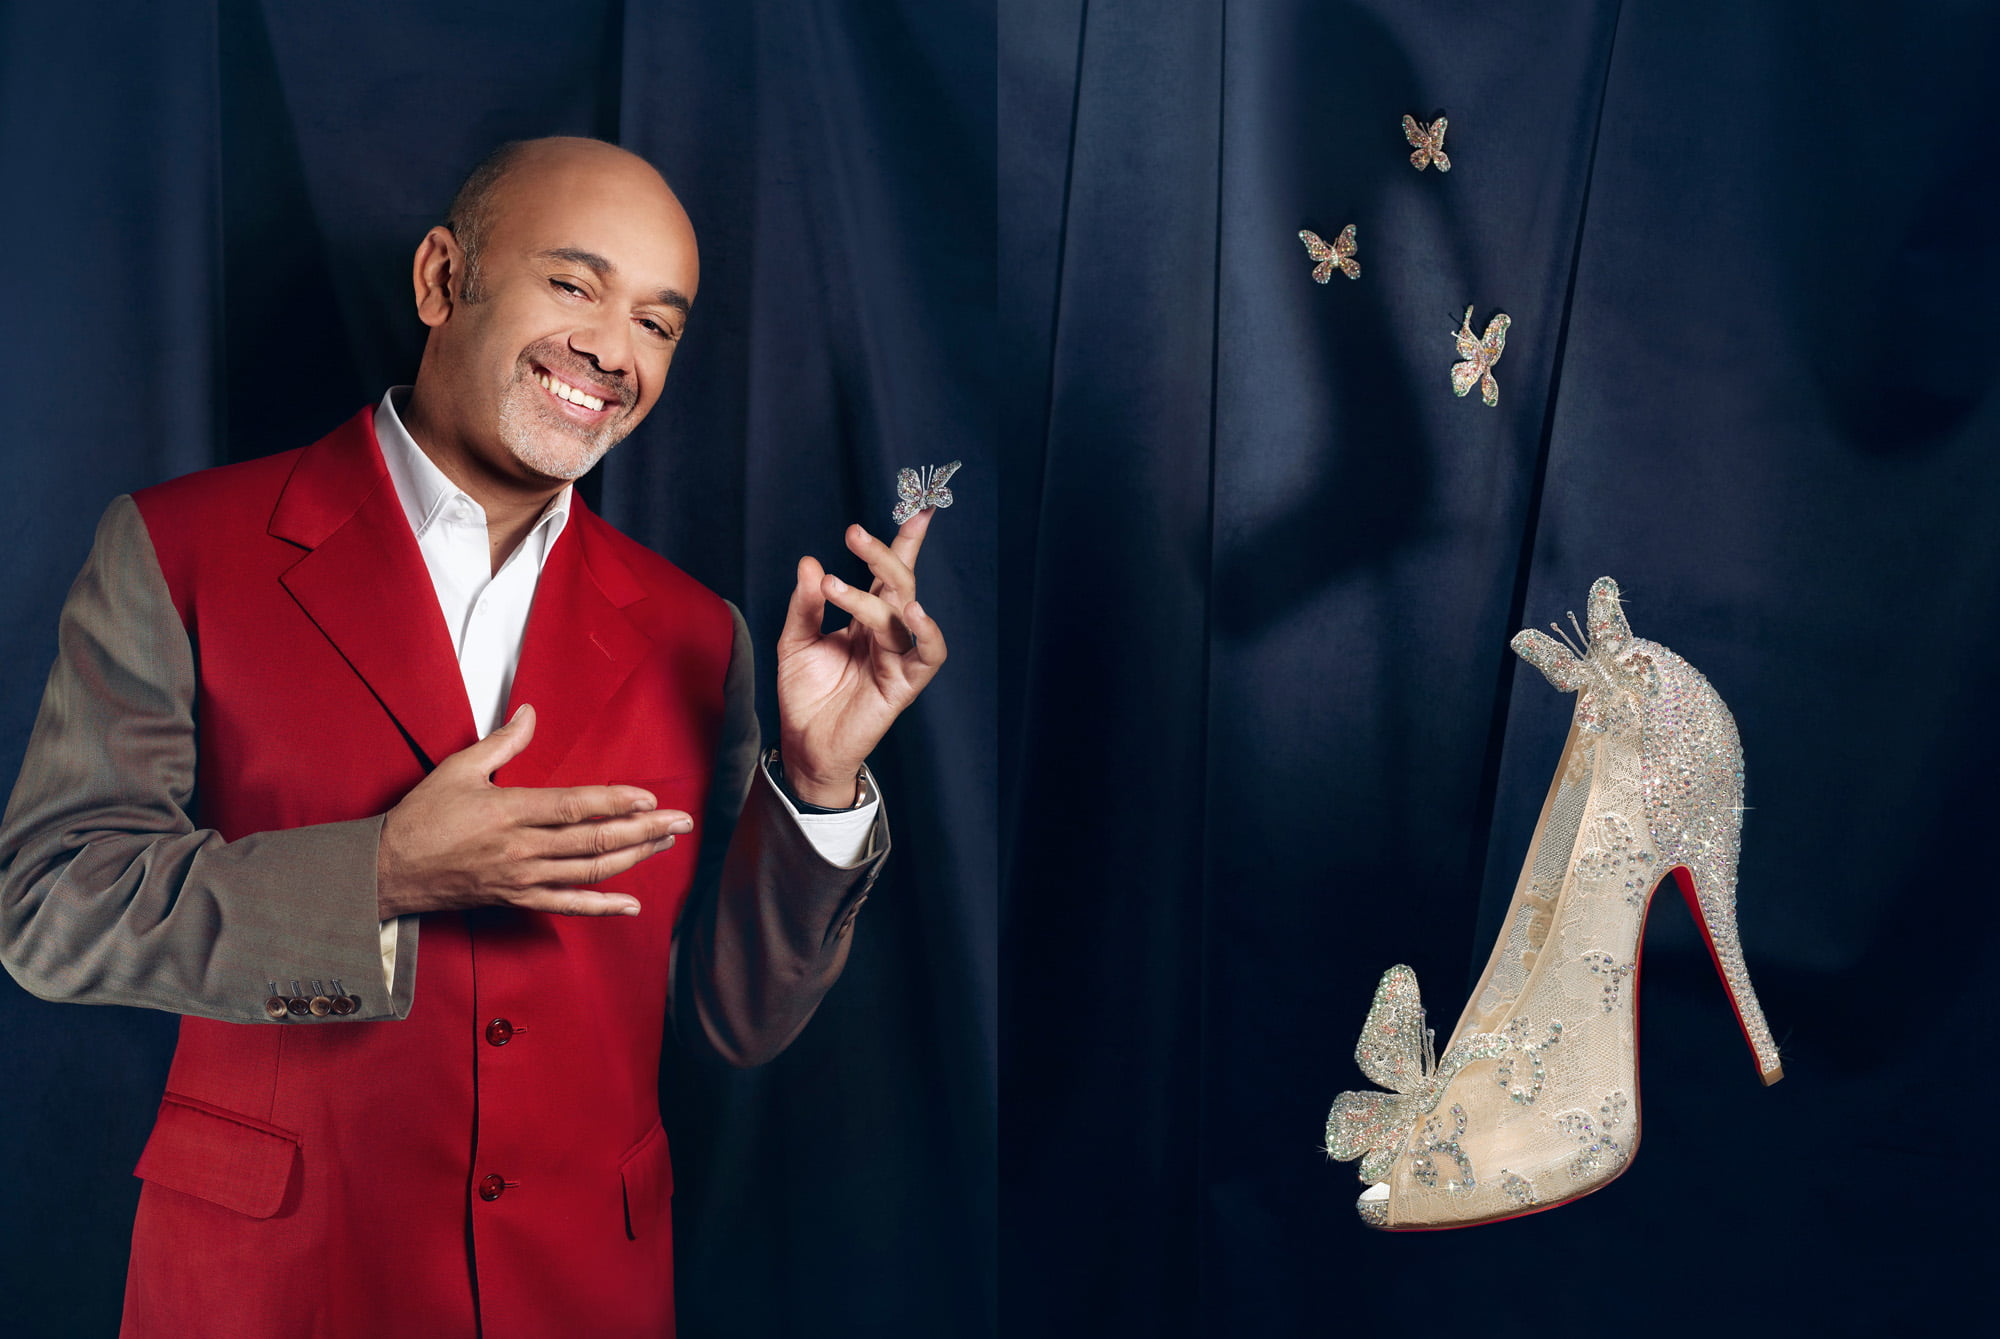 Christian Louboutin with the Cinderella slipper